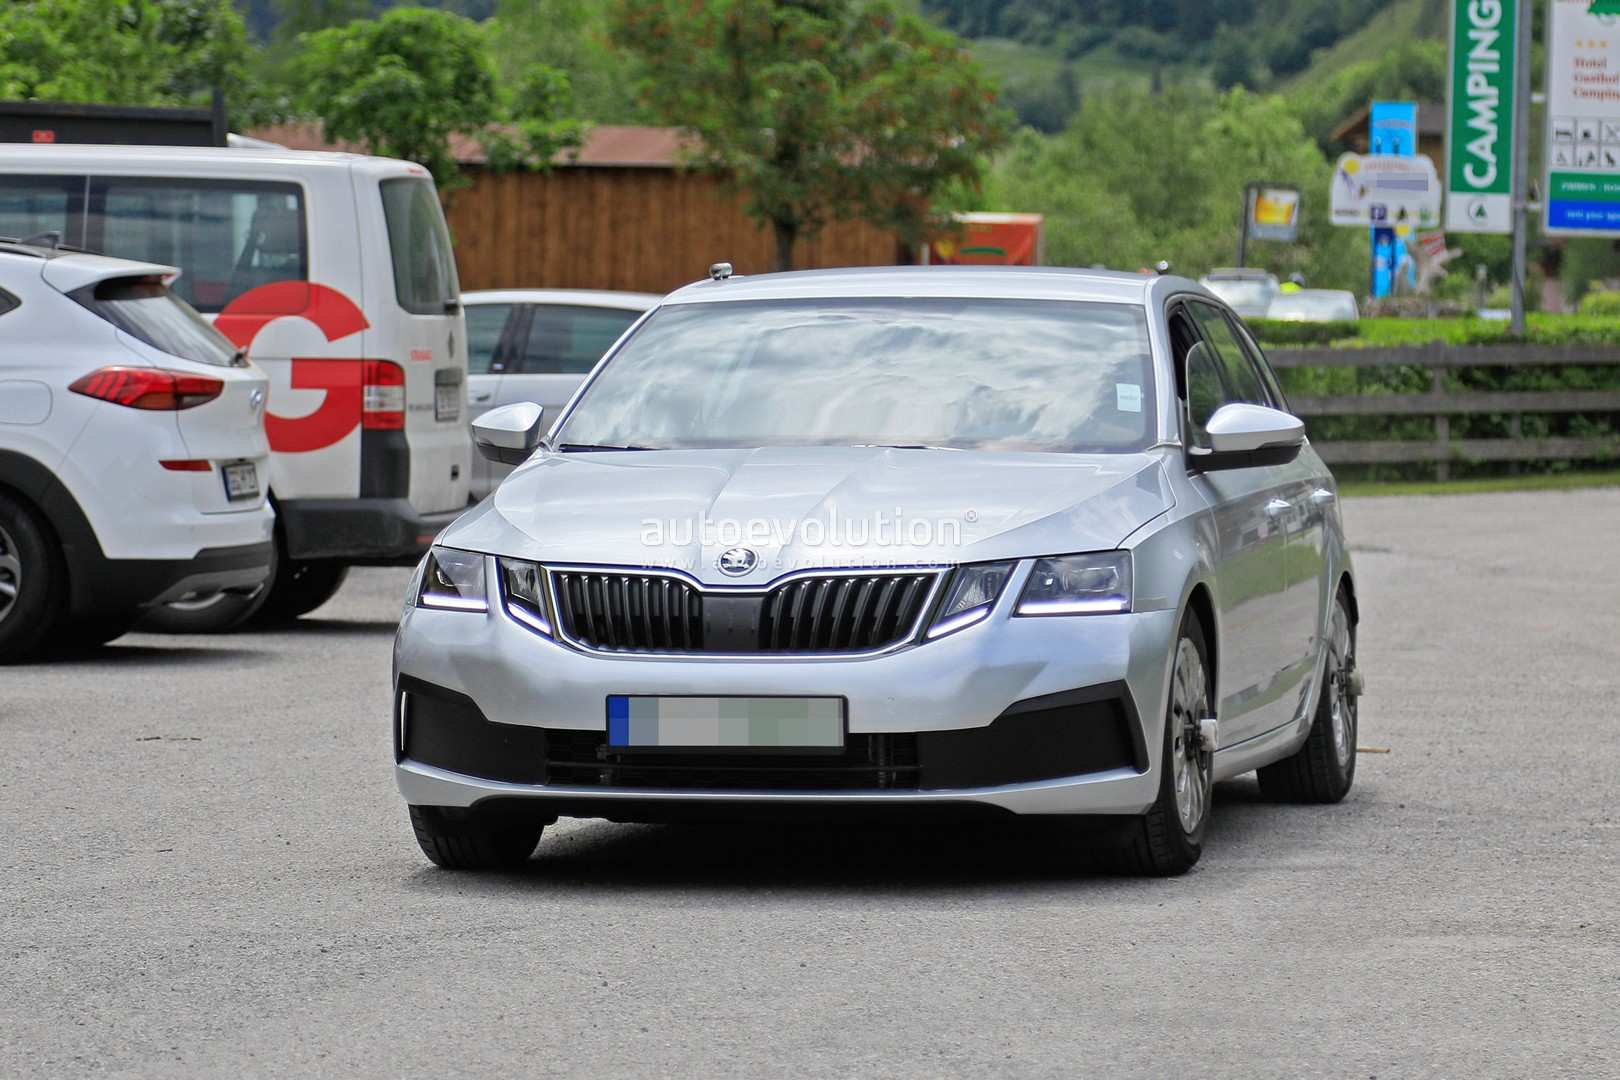 54 The Spy Shots Skoda Superb Price And Release Date